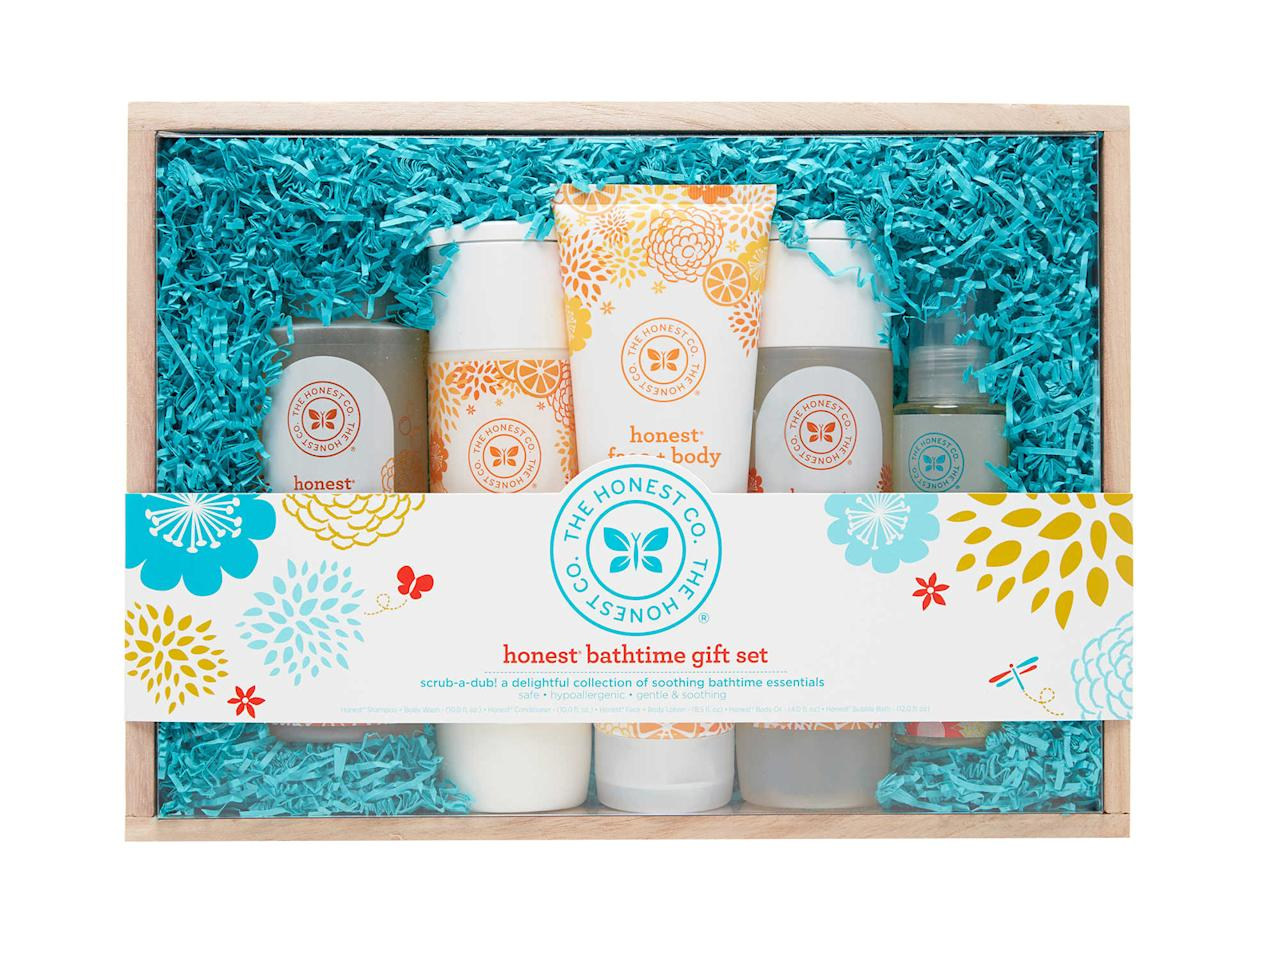 "<p>""I am obsessed with all Honest products! I love their diapers, wipes, hand sanitizer spray, organic healing balm, sunscreen, and especially their bath products. They aren't made with harsh chemicals and they are safe and super gentle (perfect for a new baby!).""</p><p>Buy it <a rel=""nofollow"" href=""https://www.buybuybaby.com/store/product/honest-bath-time-gift-set/1020207427"">here</a> for $50.</p>"